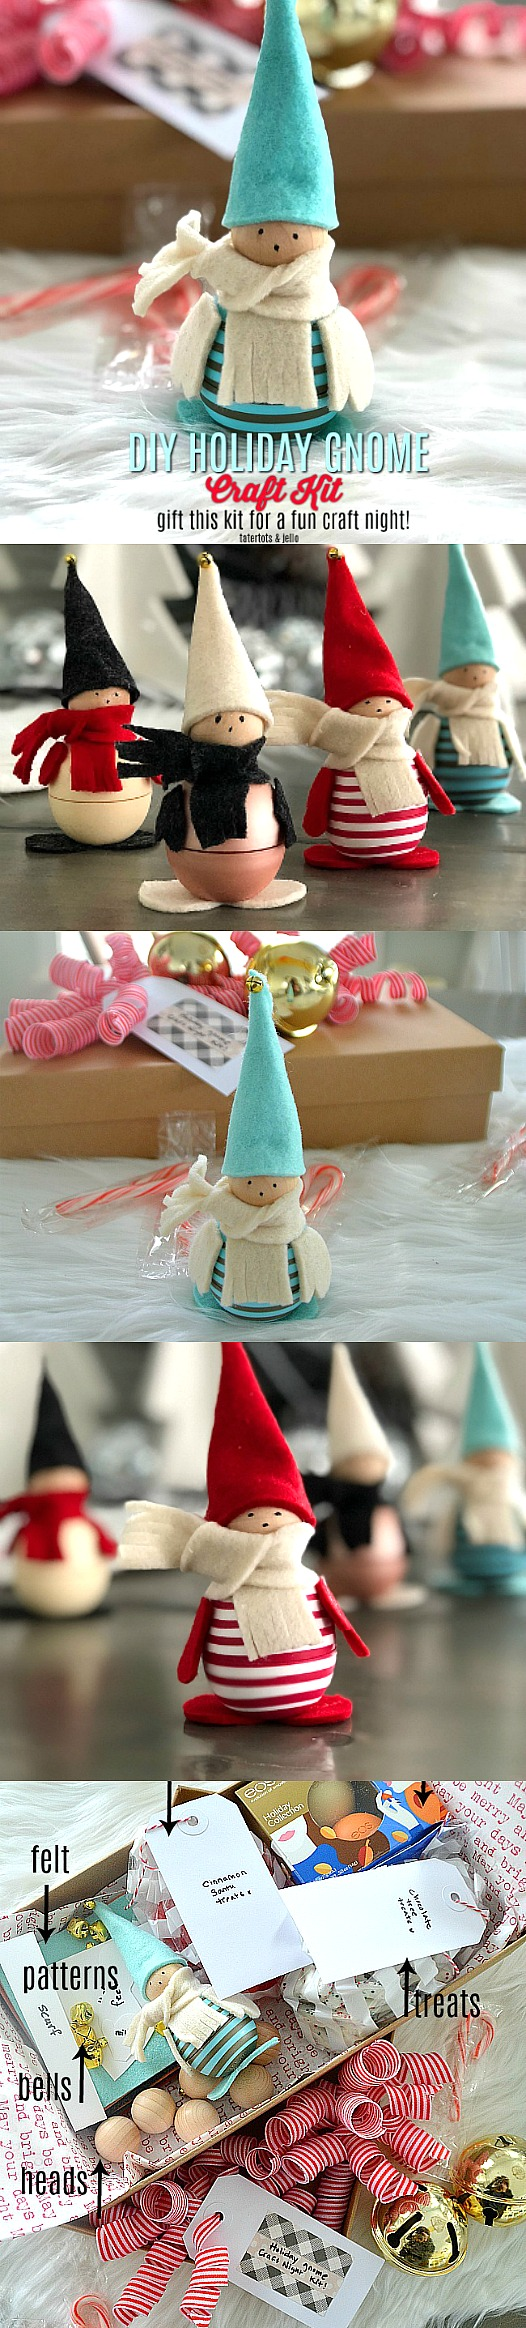 Holiday Gnome Craft Kit - fun craft night idea!